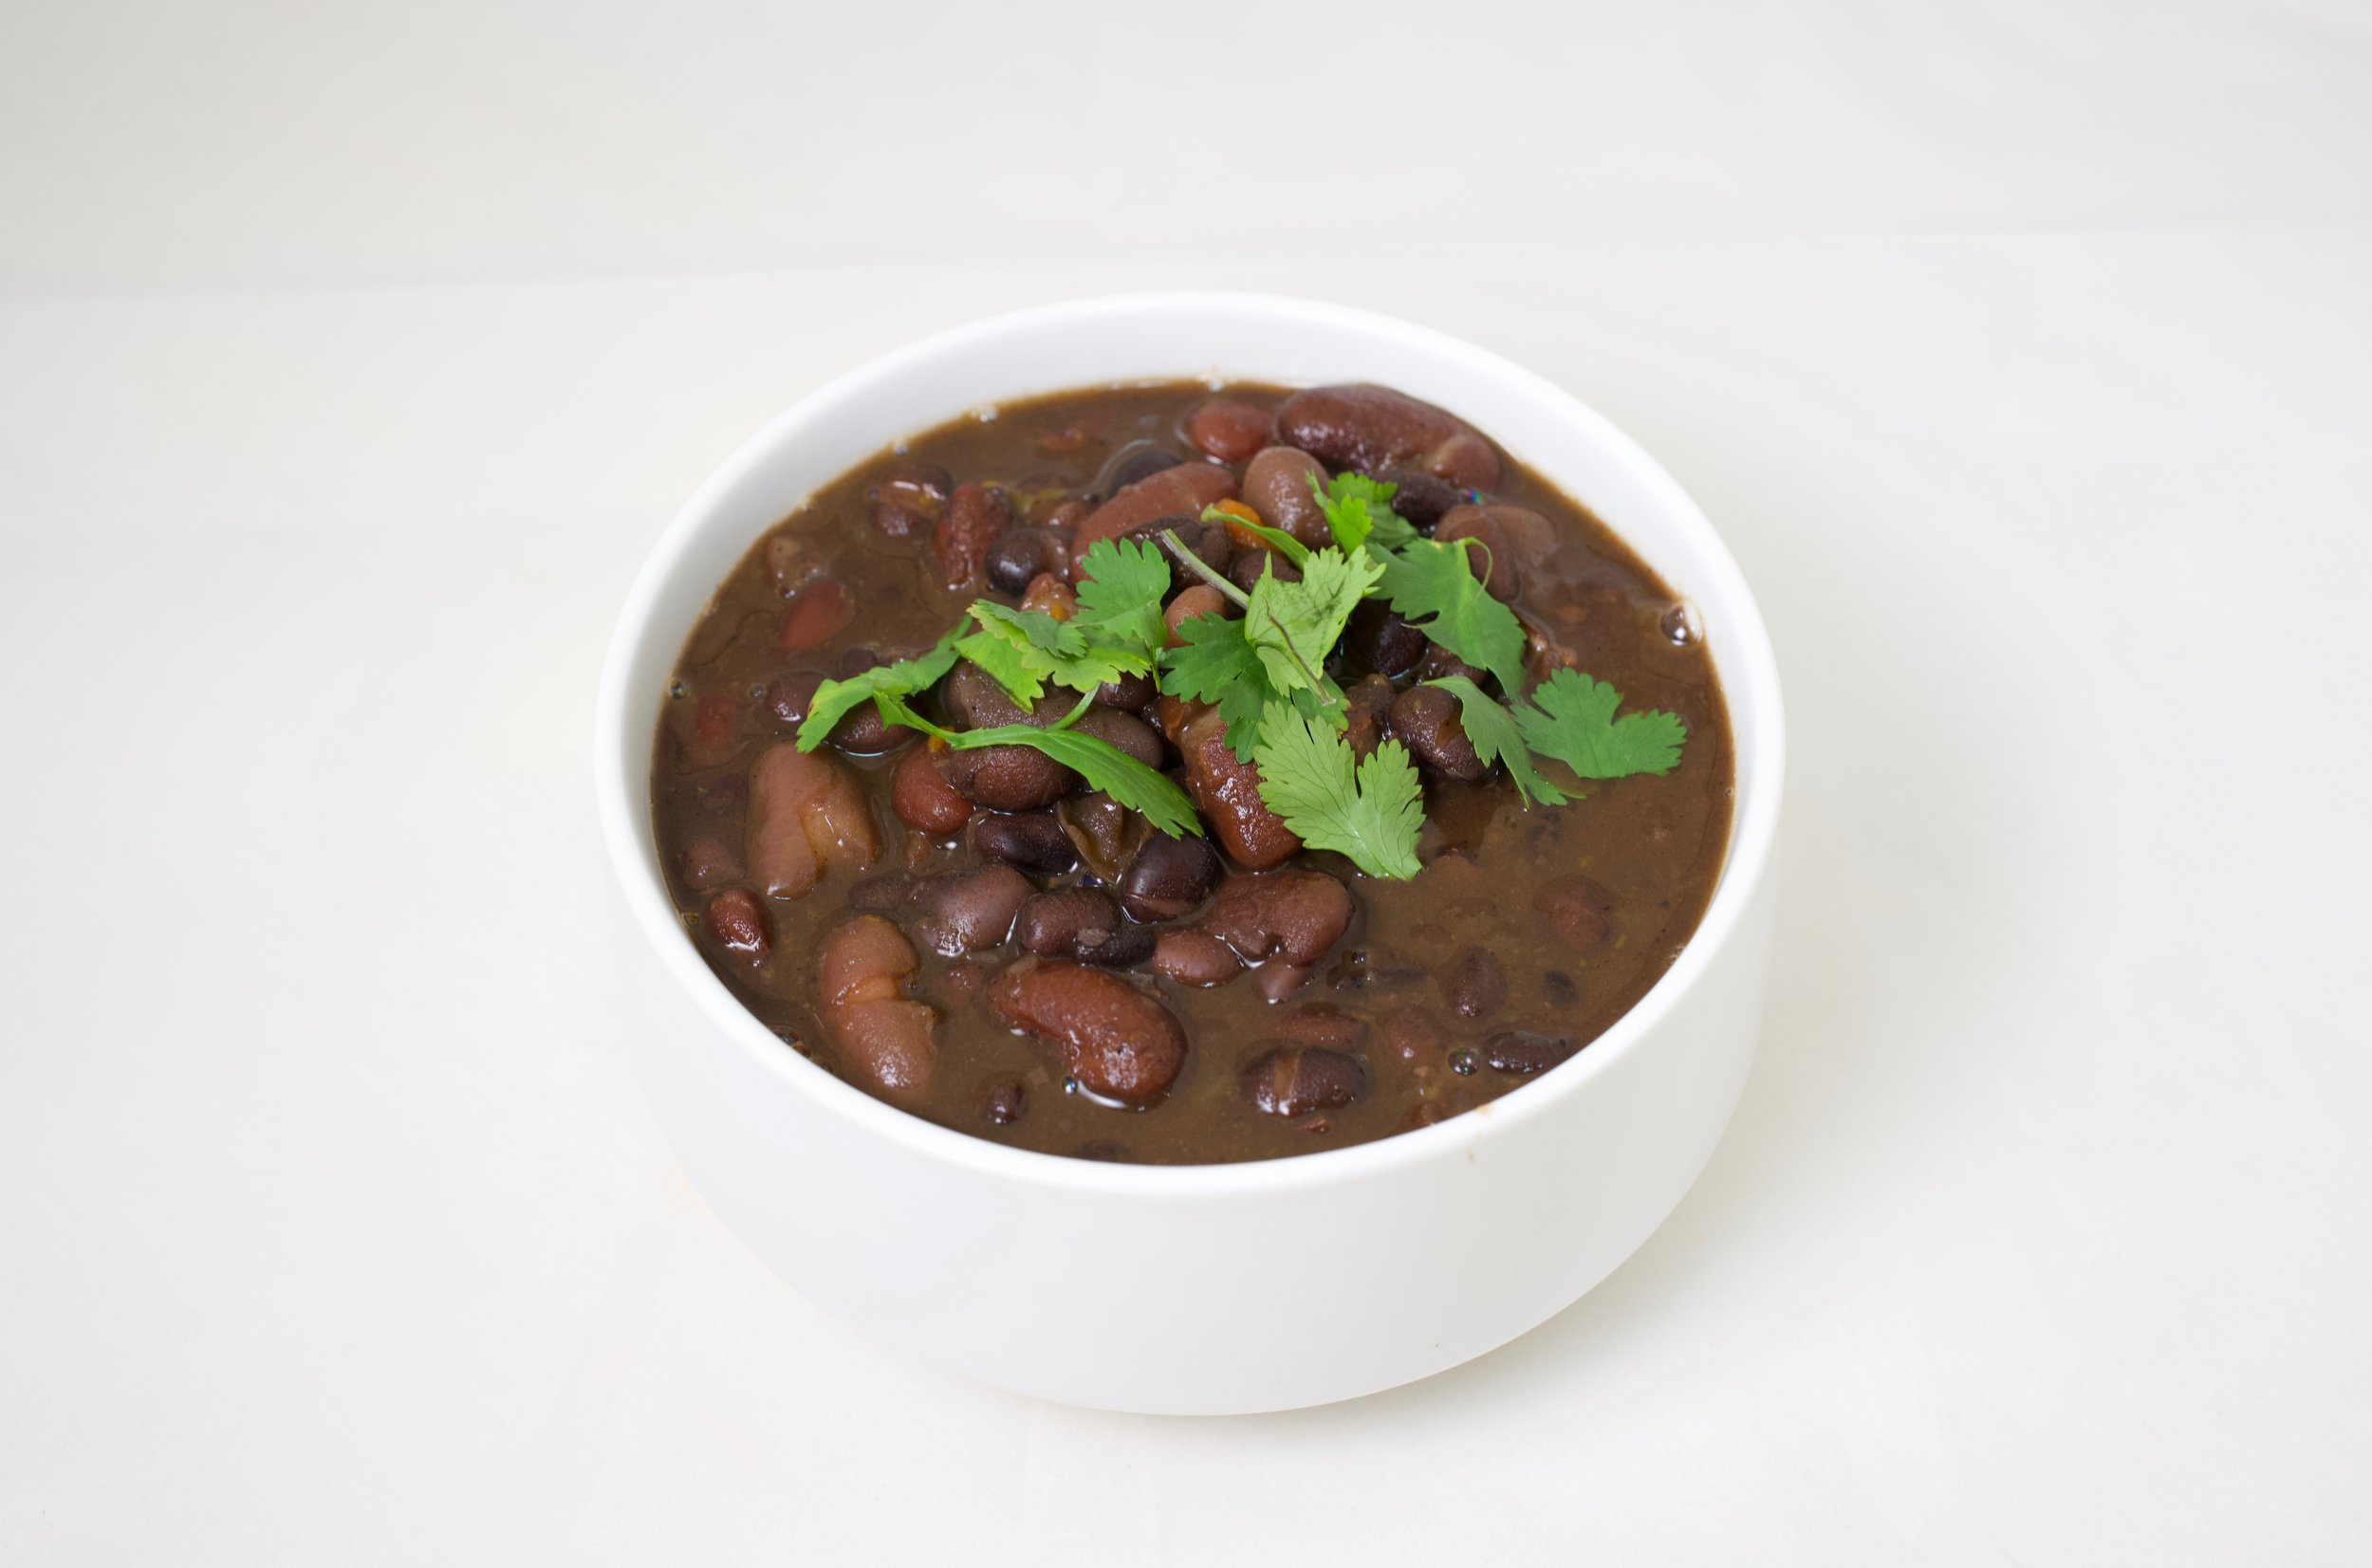 64. Vegetable Chili Beans